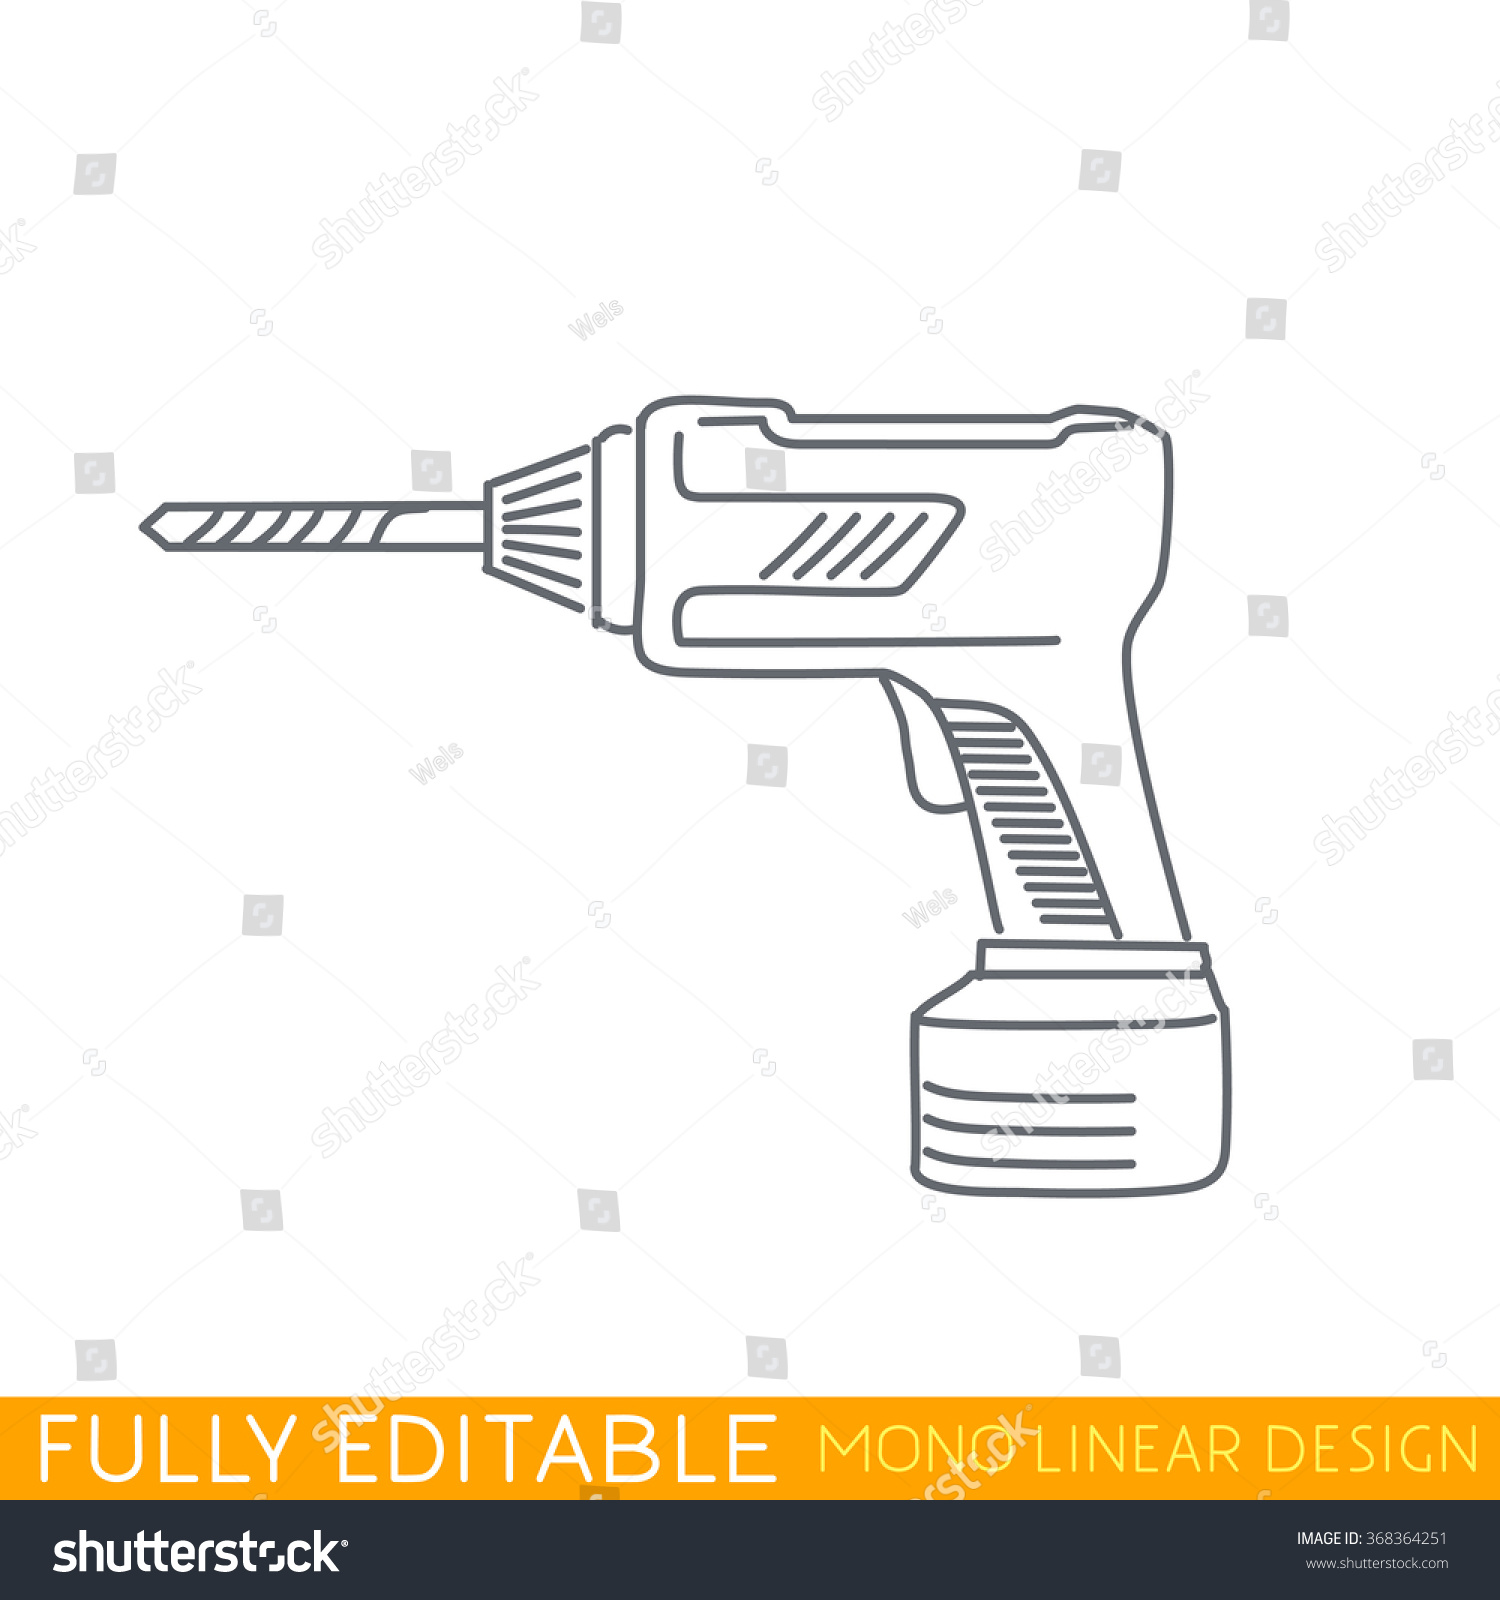 Drill Template | Royalty Free Cordless Drill Modern Thin Line Logo 368364251 Stock